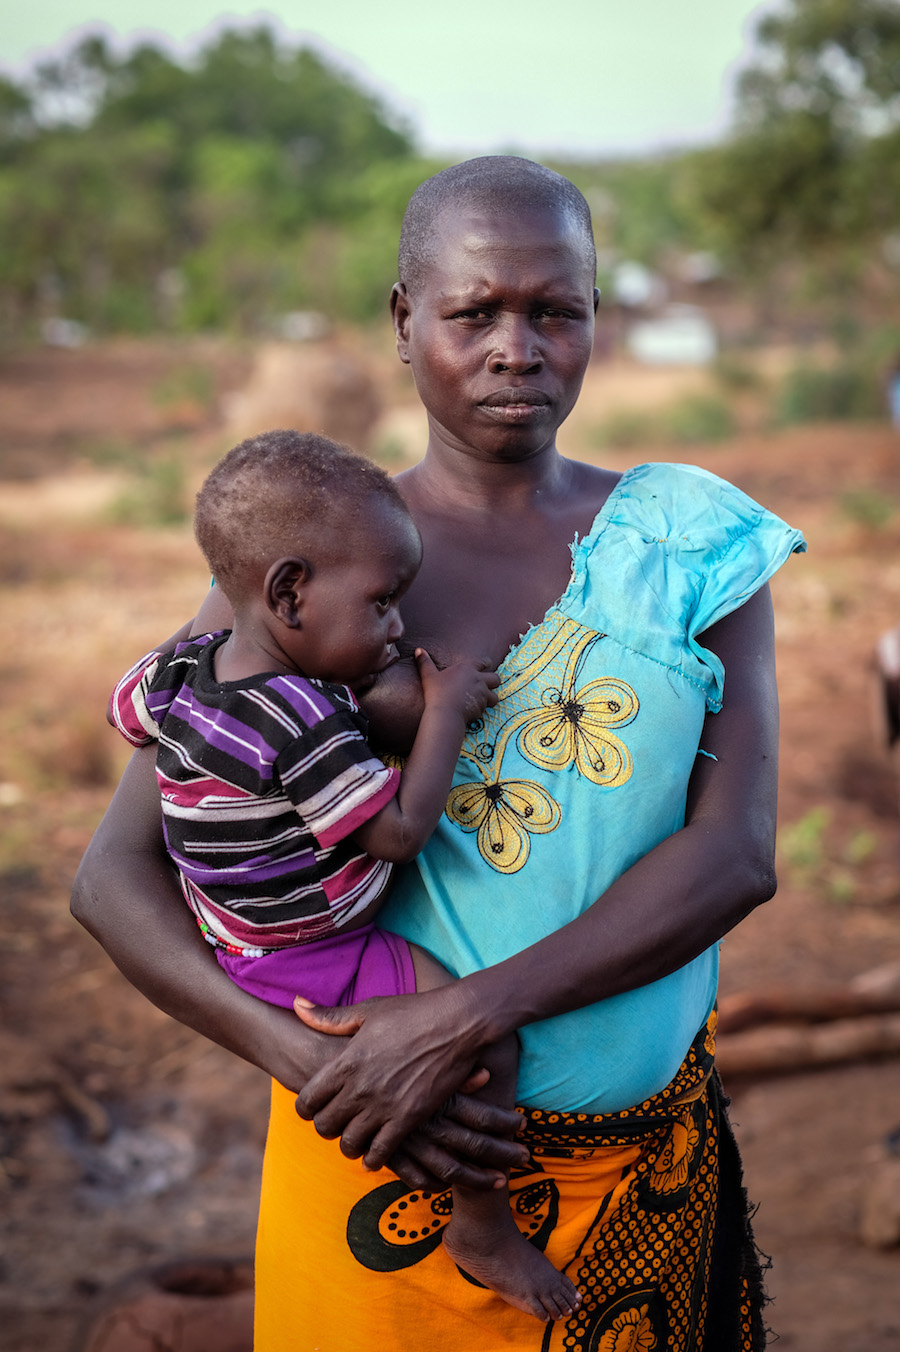 Thousands of new refugees from South Sudan arrive in Uganda every day, hoping for a better, safer future for their children.